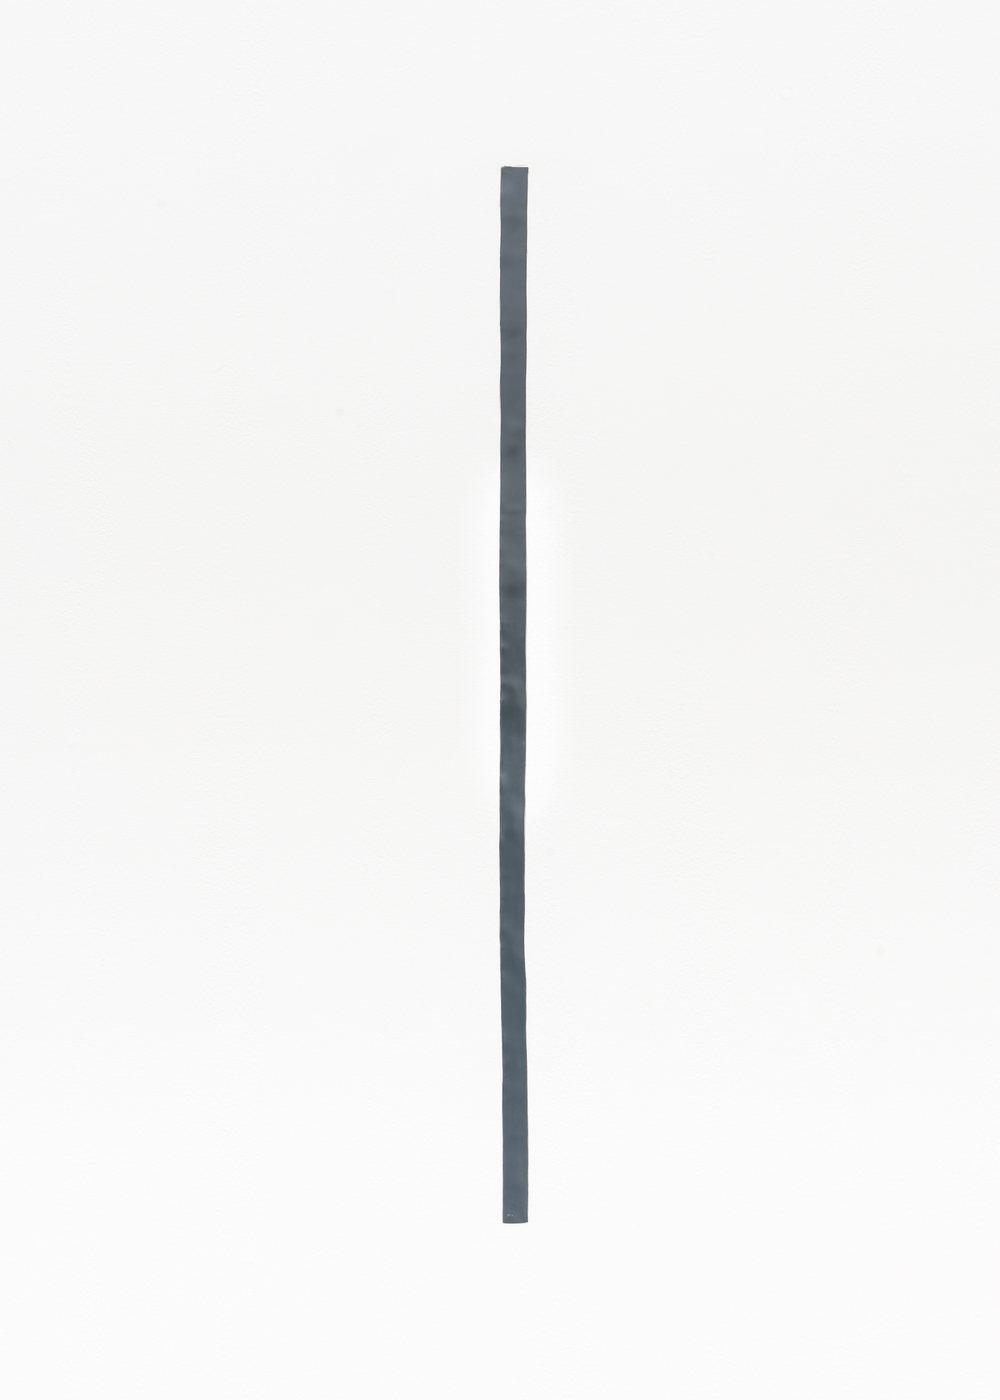 "Nancy Brooks Brody 43 inch Measure 2014 Oil enamel on lead embedded into wall 43"" x 1"" NBB001"